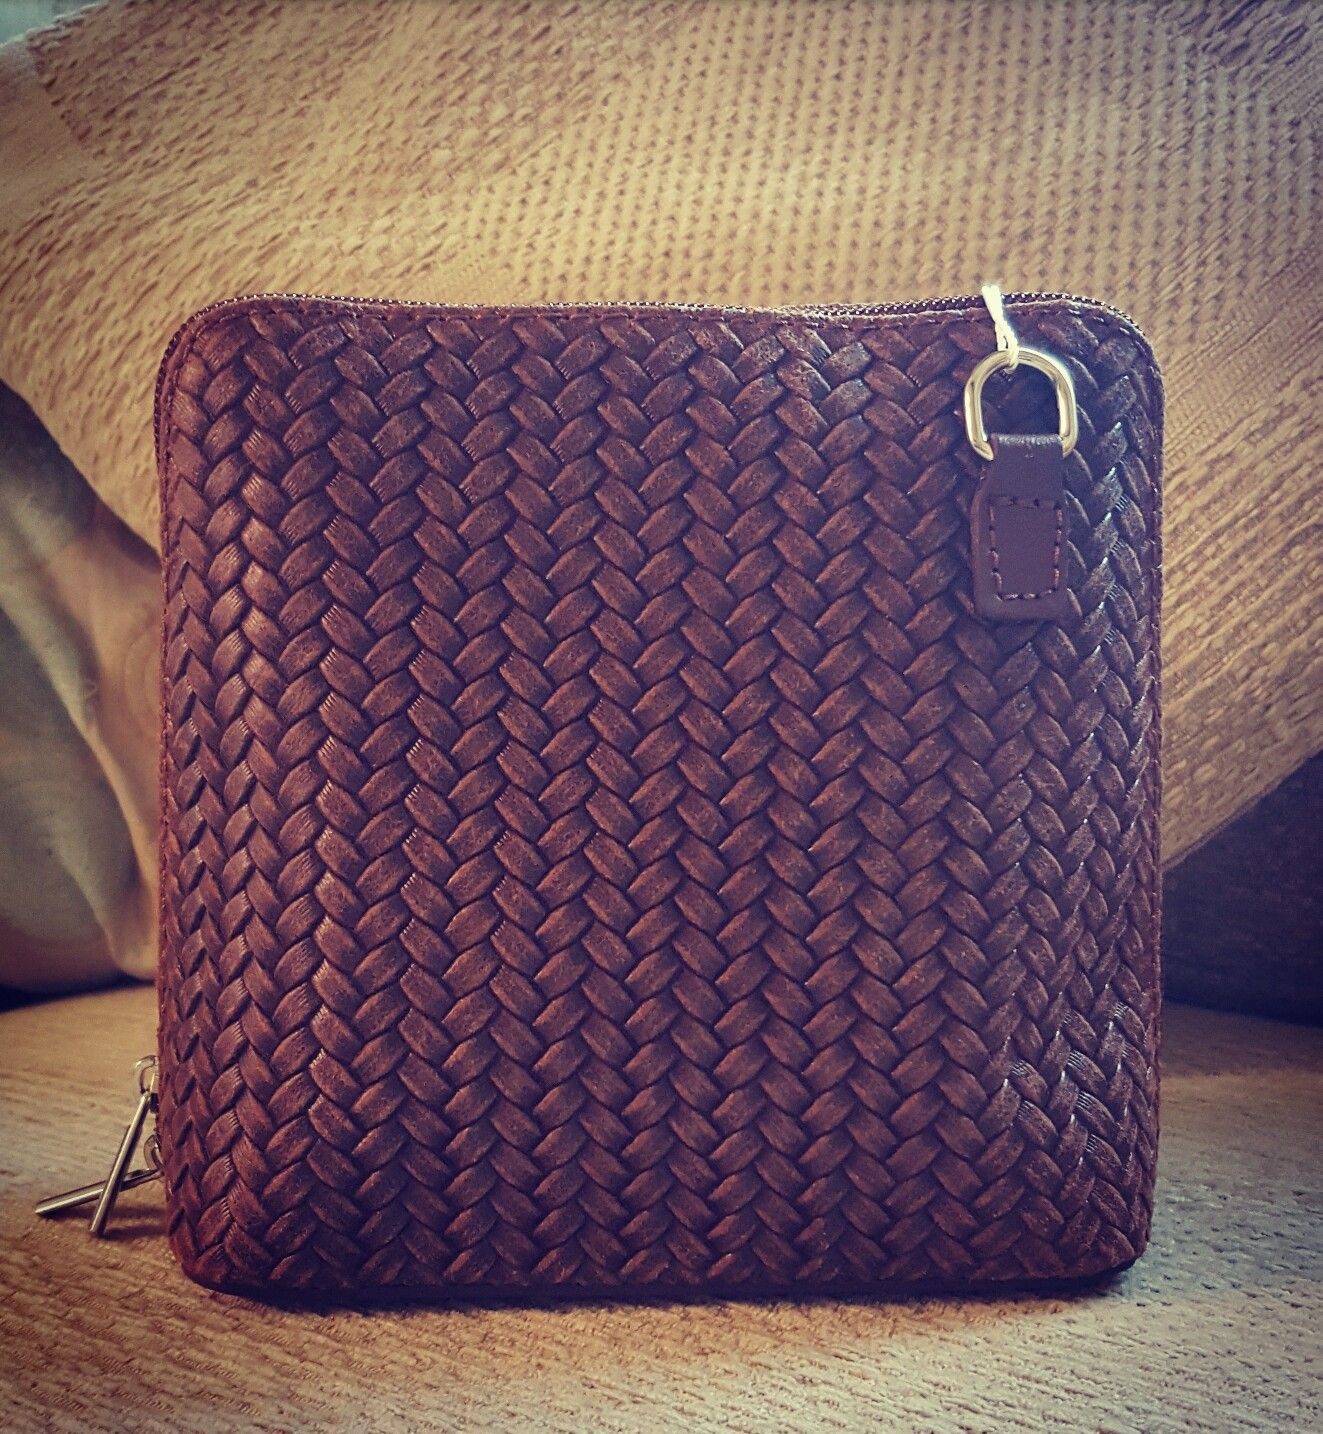 Love Handbags Take A Look At Our Beautiful Brown Woven Effect Italian Leather Handbag Just 27 50 Divineanddandy Co Uk With Free Shipping In The